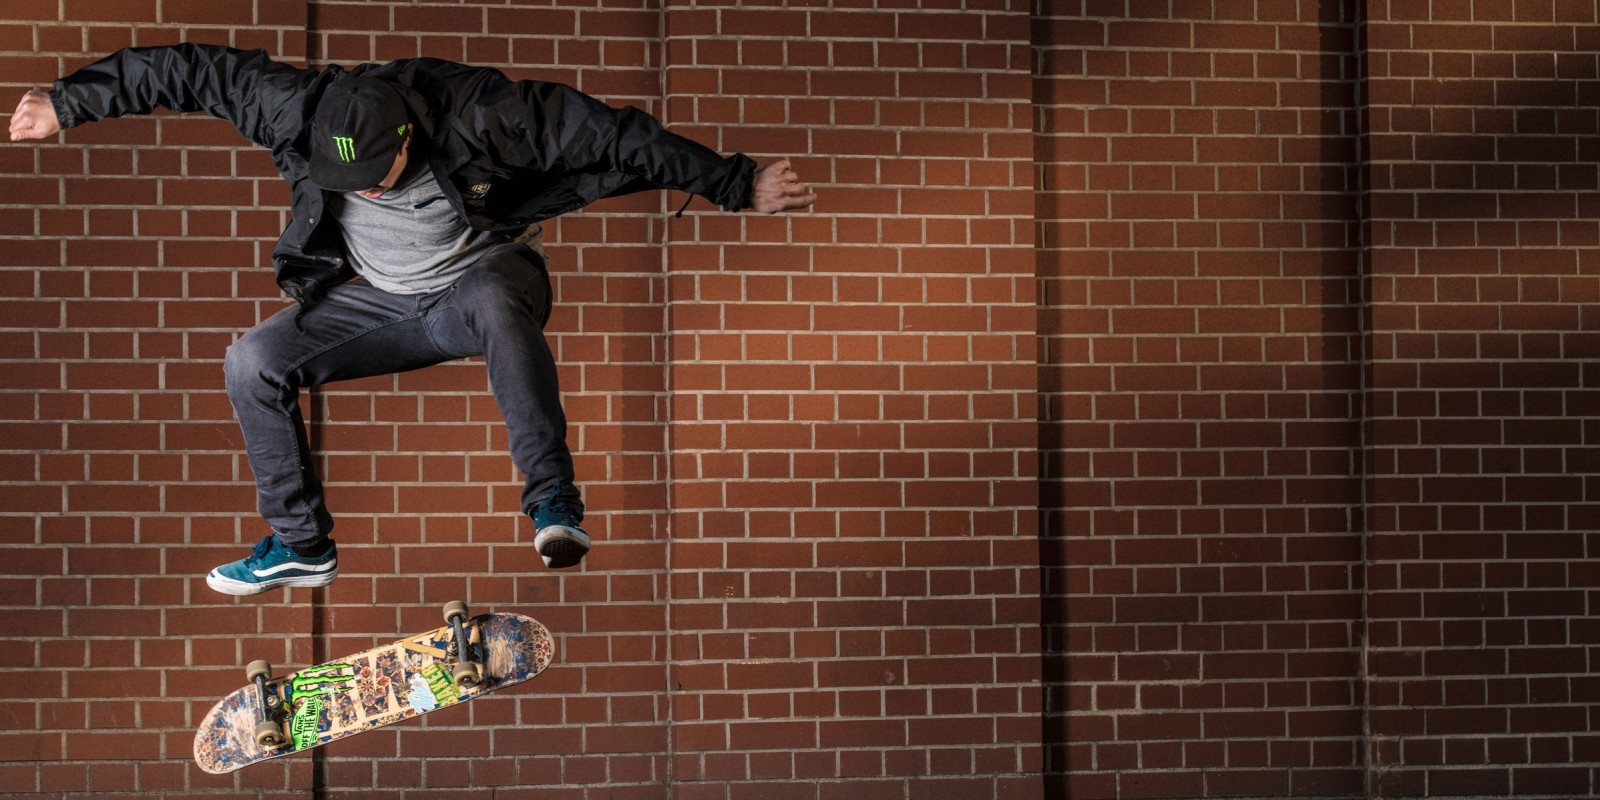 Richard Tury, skate, Ultra Citron photoshoot.